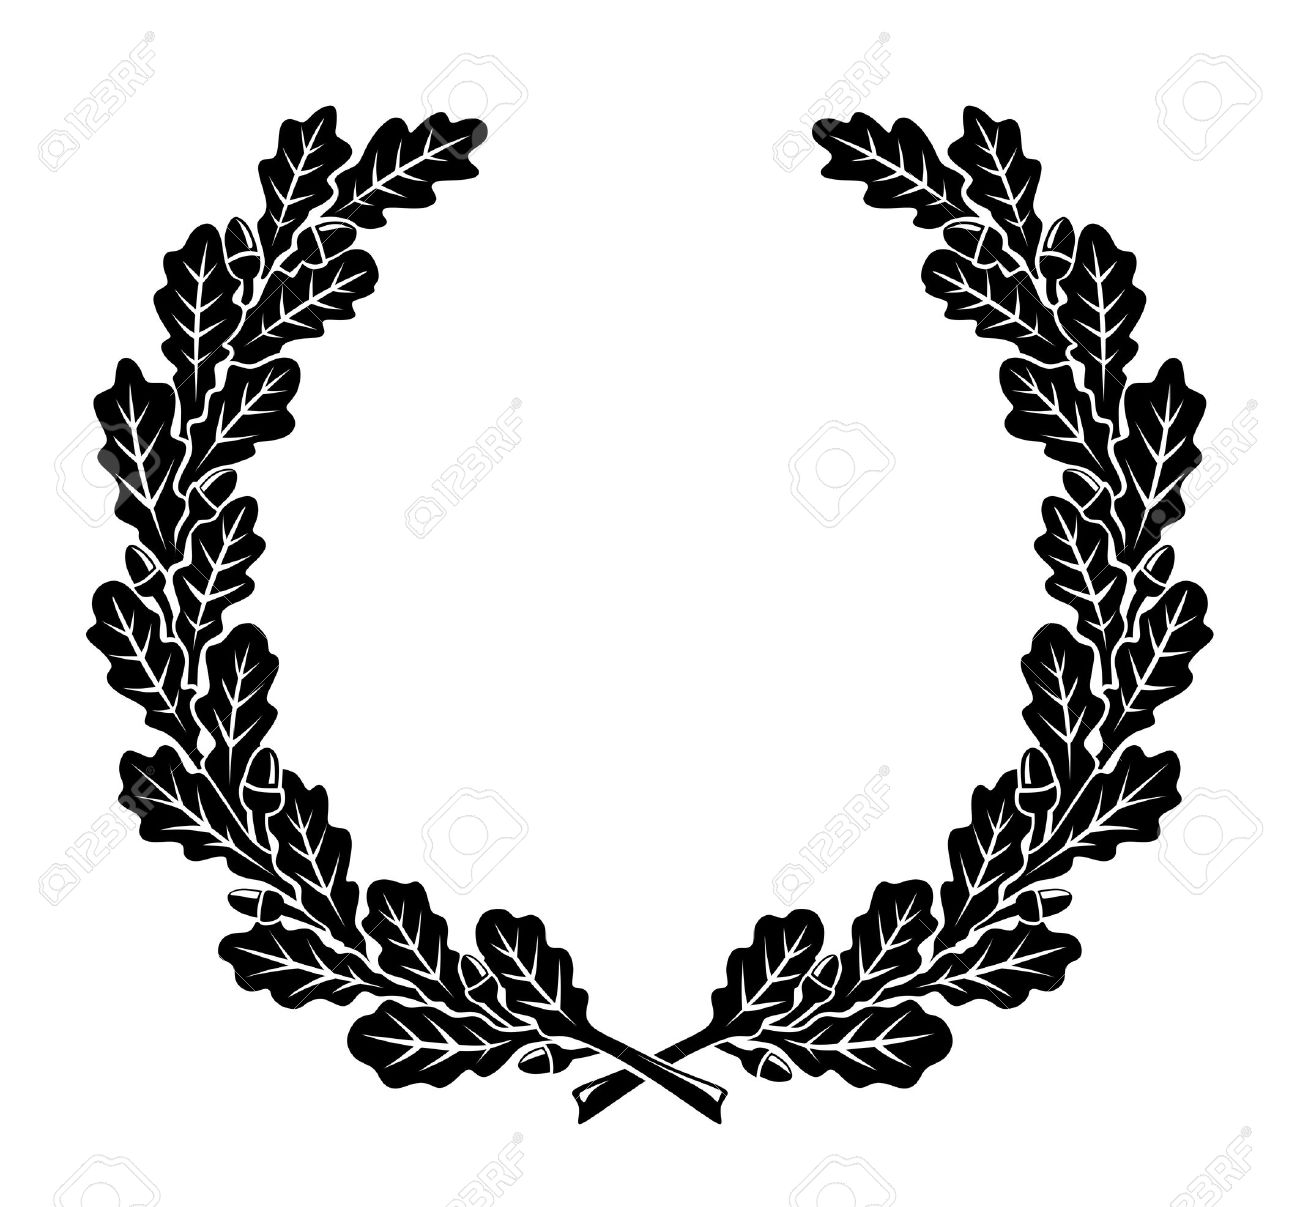 hight resolution of a simplified wreath made of oak leaves illustration